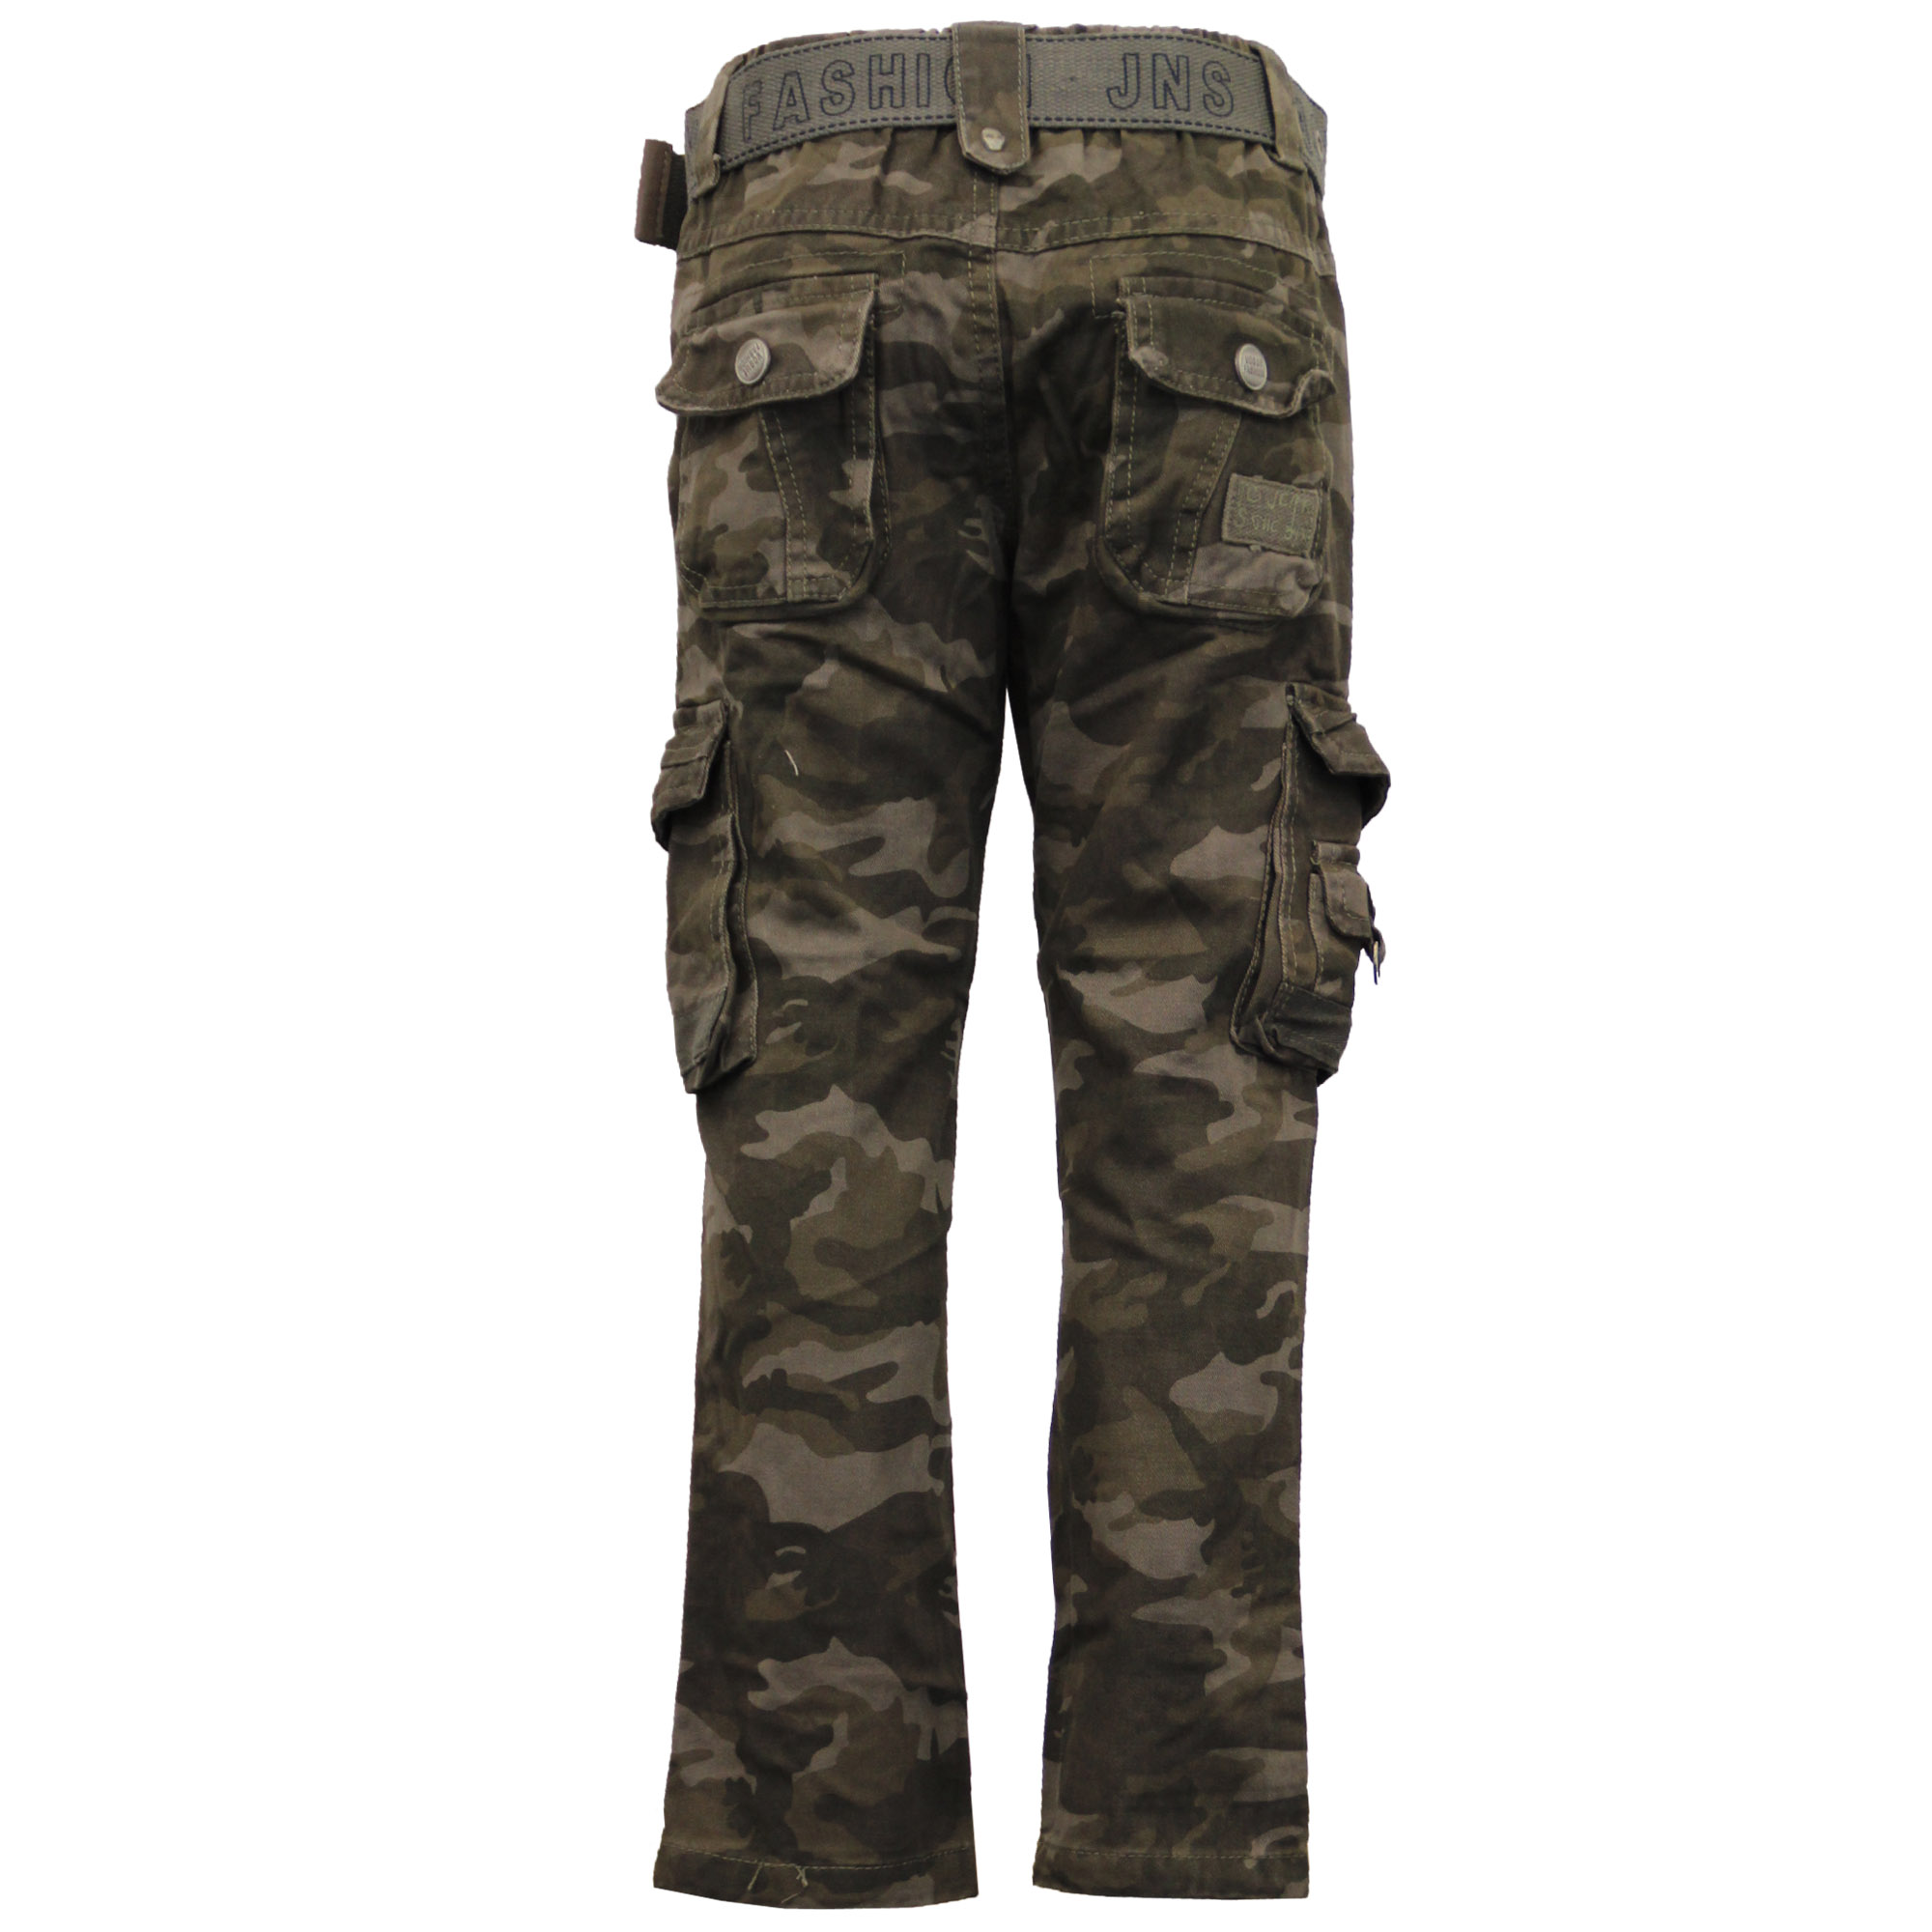 Shop for boys camouflage clothing online at Target. Free shipping on purchases over $35 and save 5% every day with your Target REDcard.